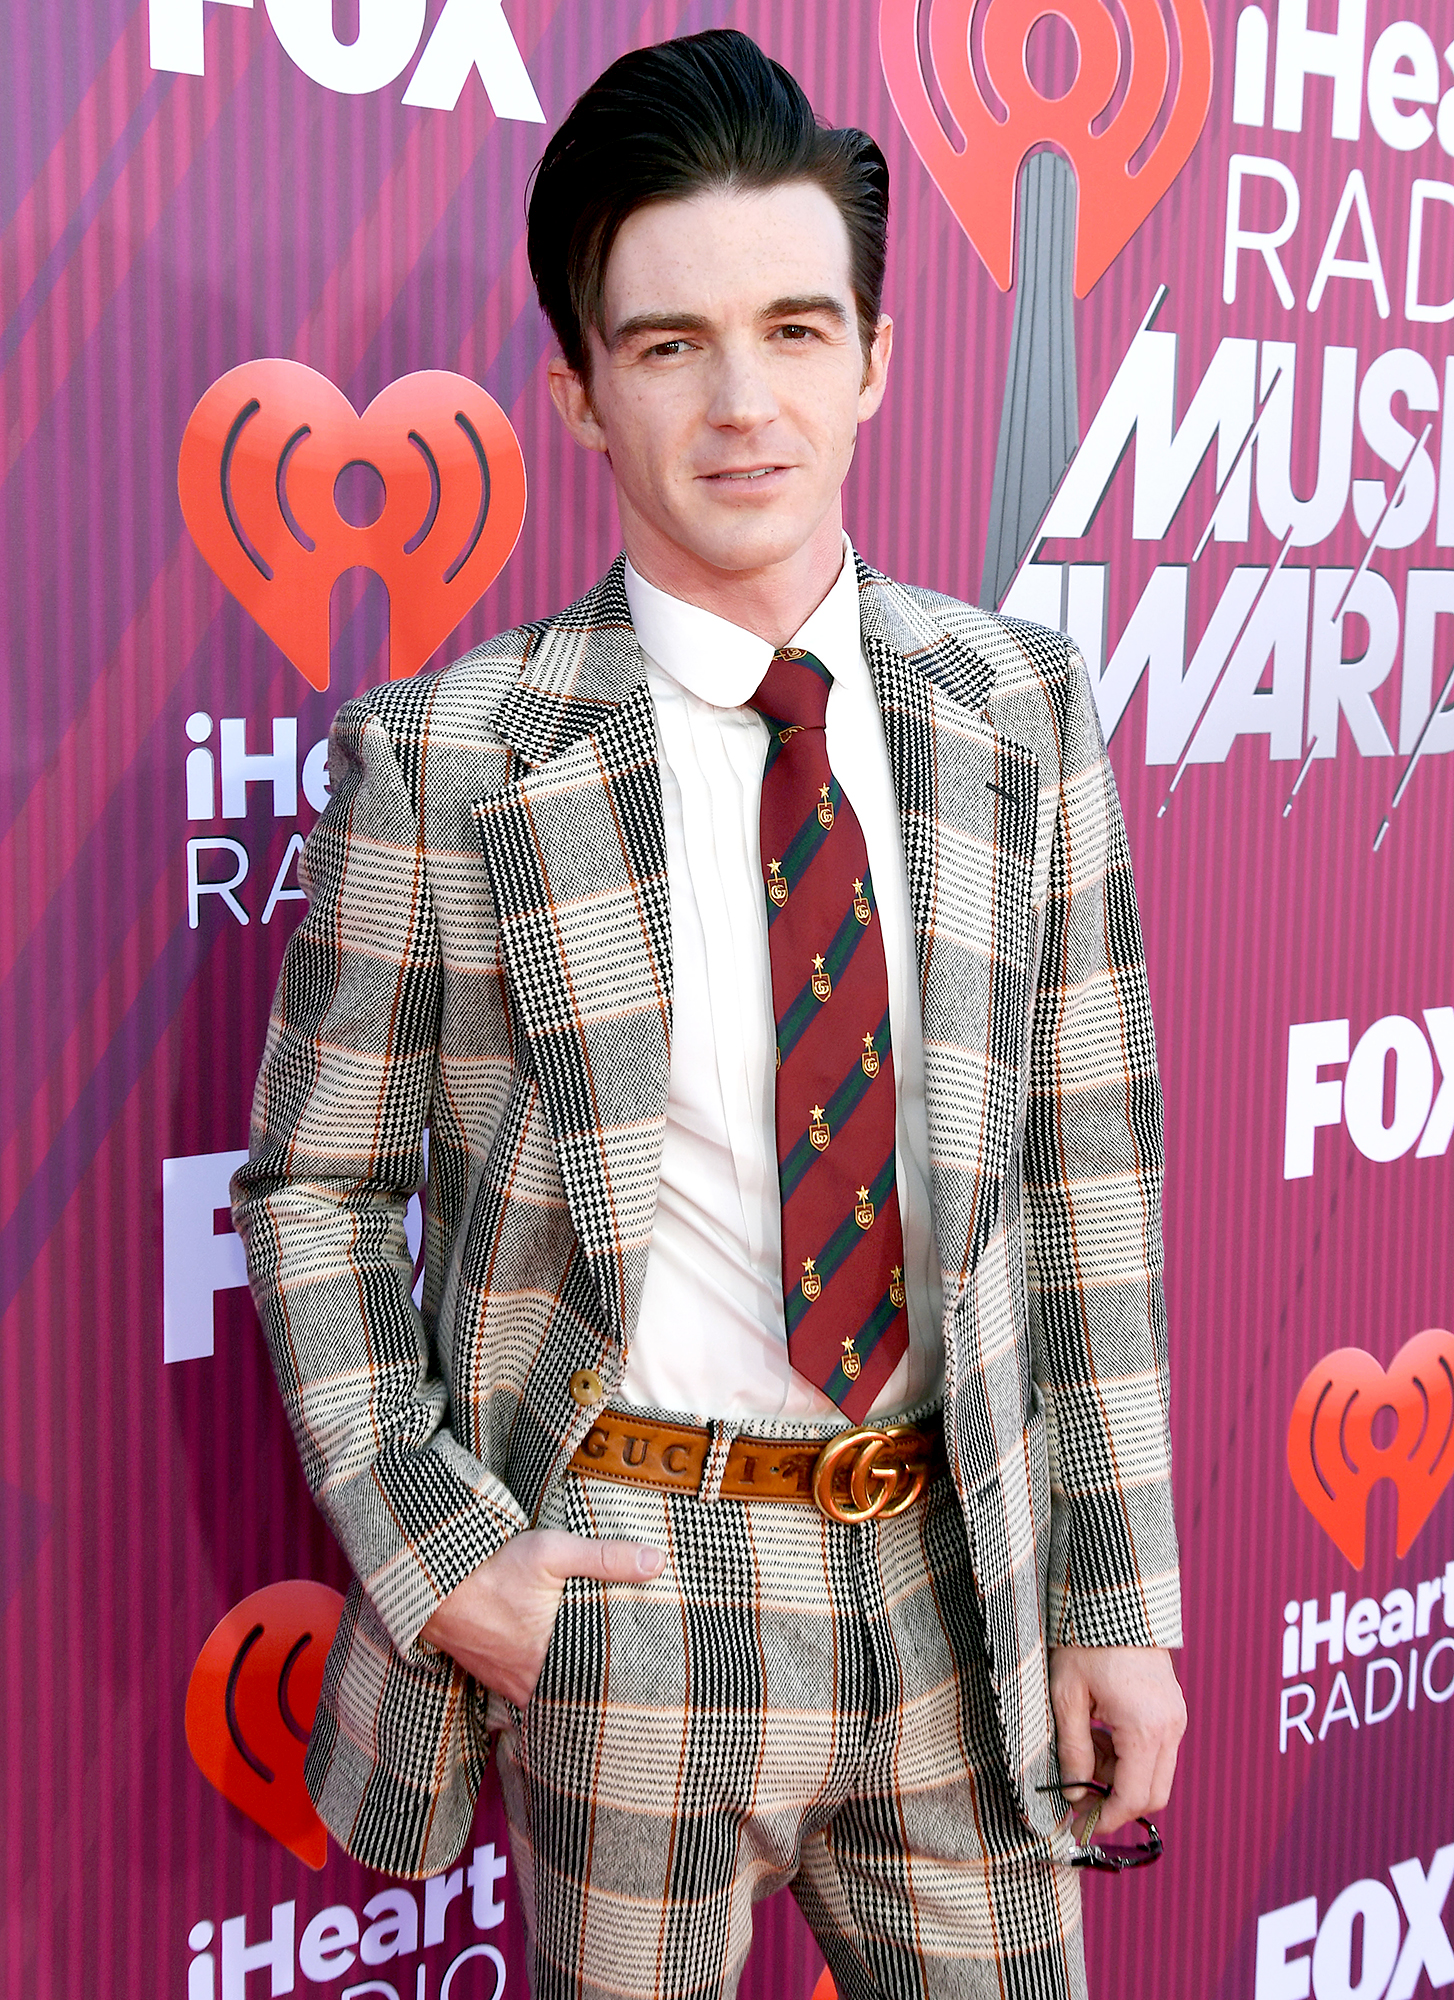 Drake-Bell-Hasn't-Met-'Drake-&-Josh'-Costar-Josh-Peck's-Son-Yet - Drake Bell attends the 2019 iHeartRadio Music Awards which broadcasted live on FOX at Microsoft Theater on March 14, 2019 in Los Angeles, California.